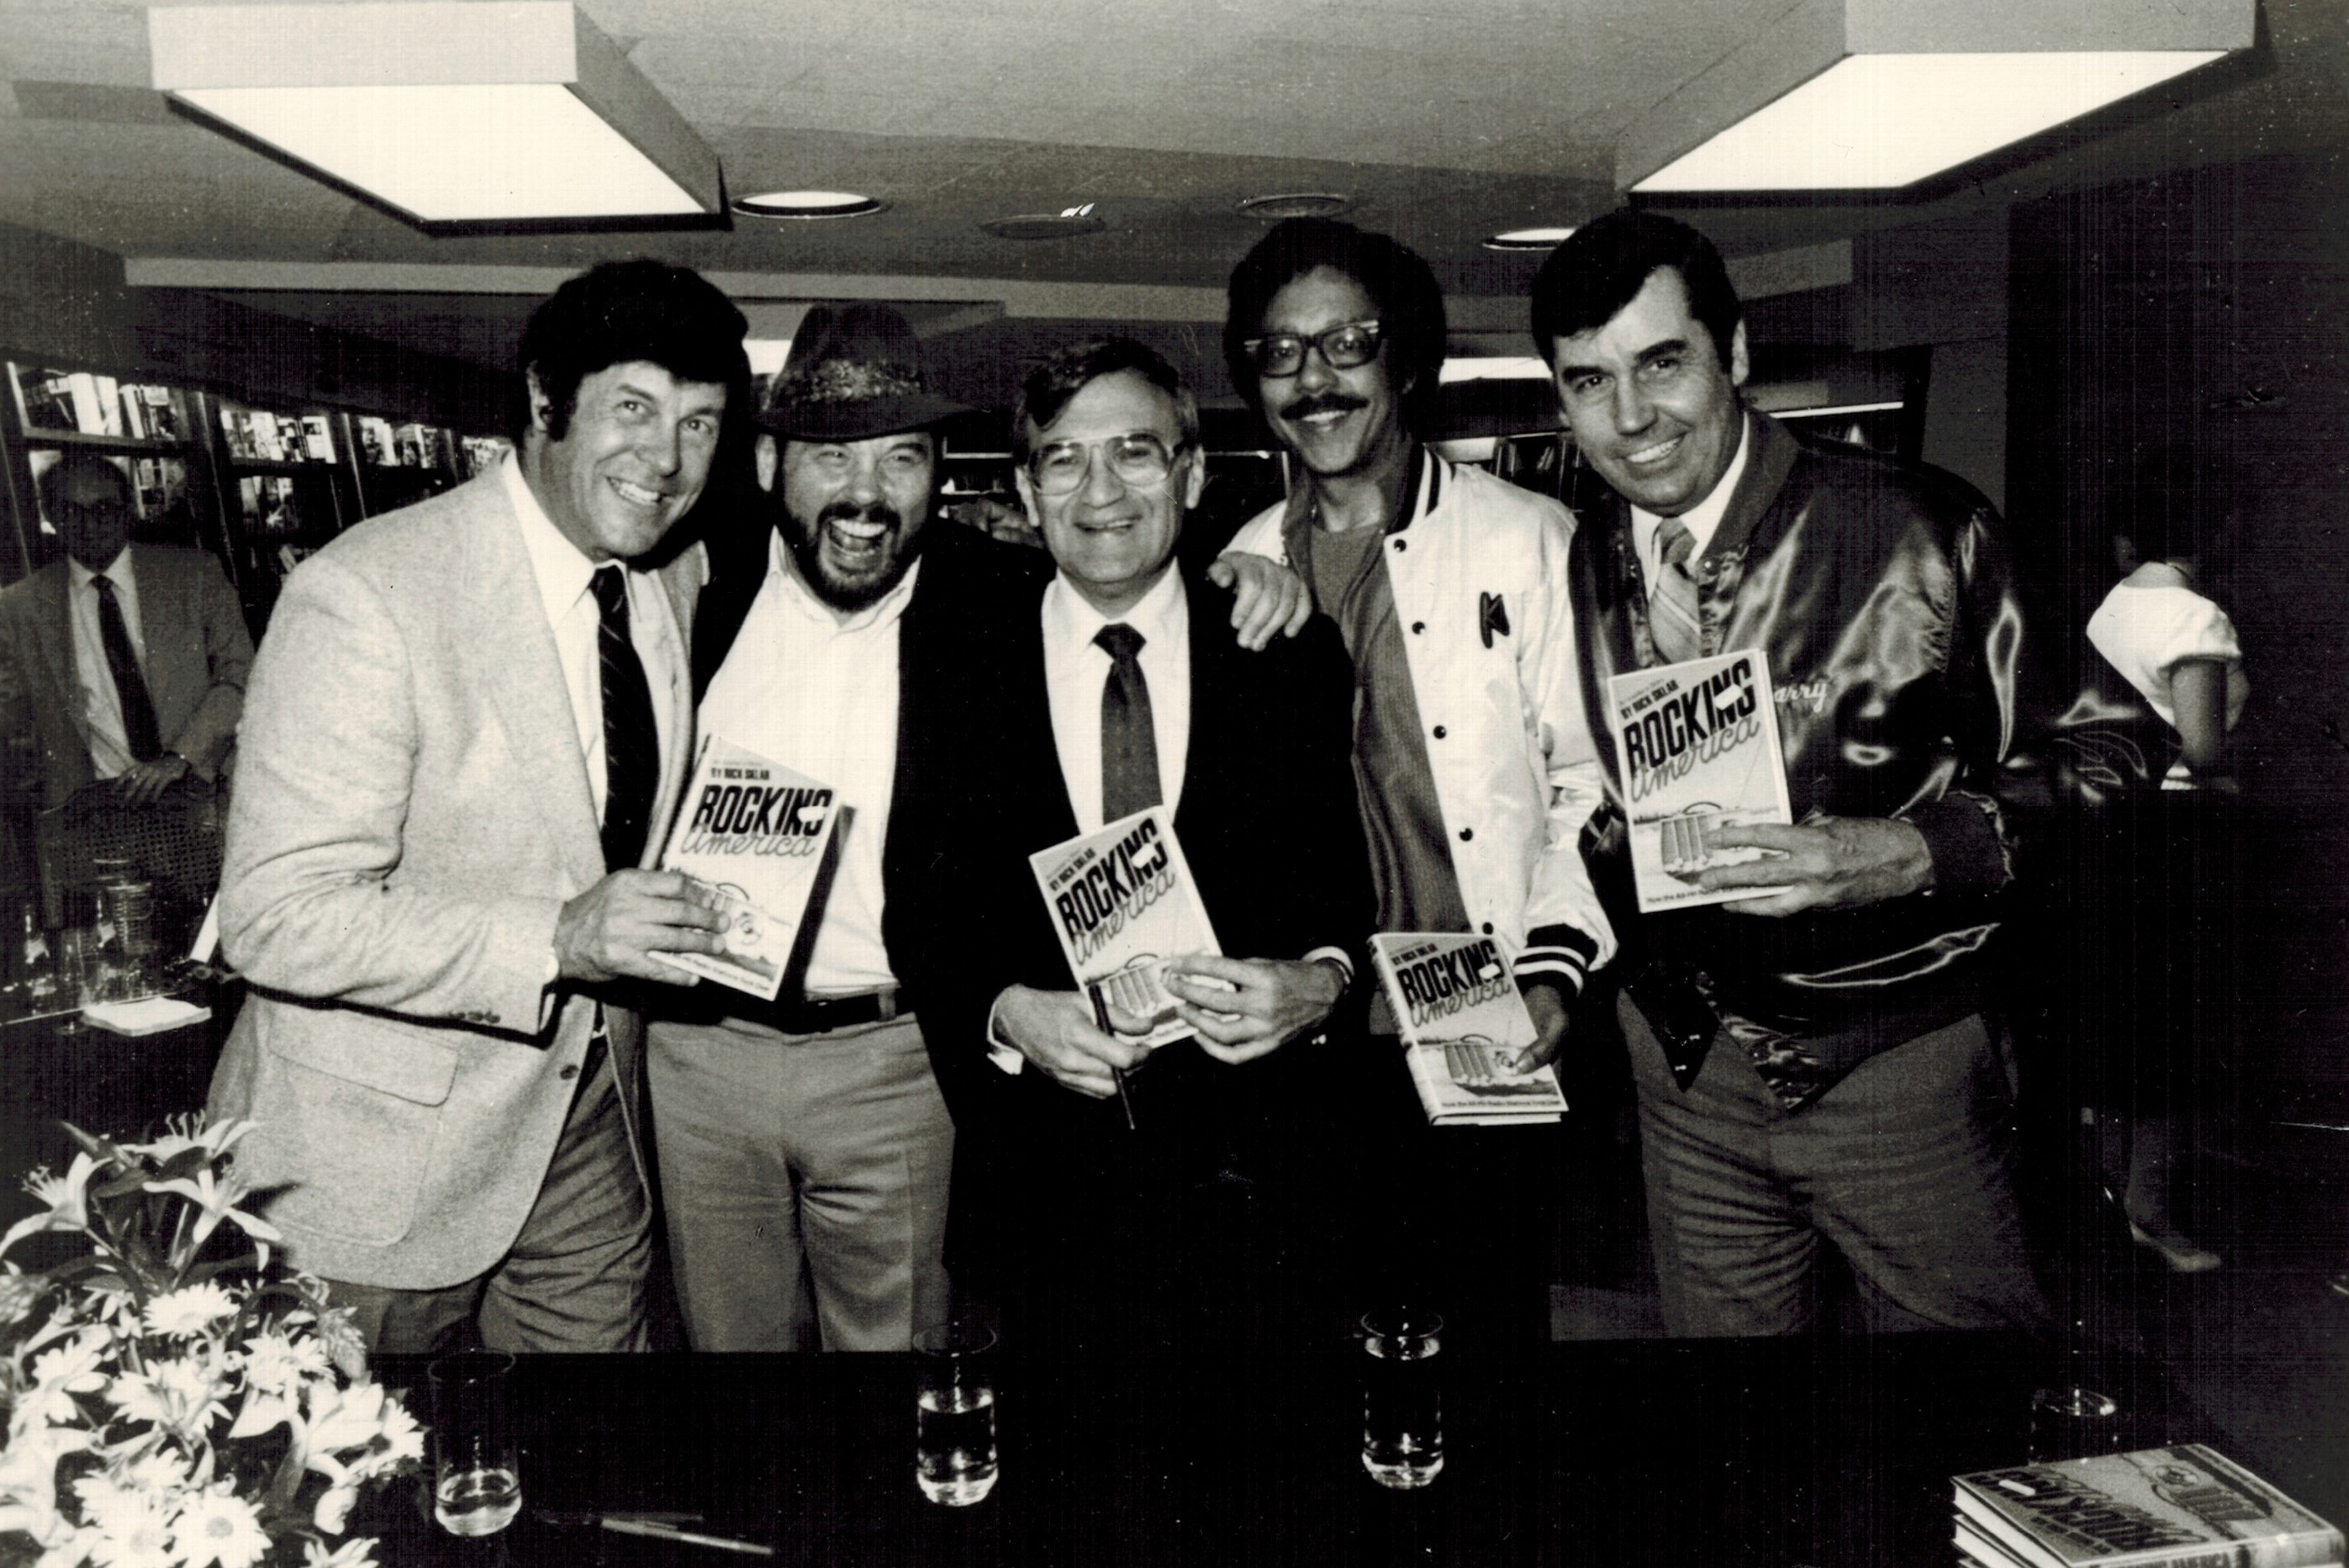 WABC disc jockeys at the Rocking America book launch party in 1984. (Left to right: Bruce Morrow, Ron Lundy, Rick Sklar, Chuck Leonard and Harry Harrison.)